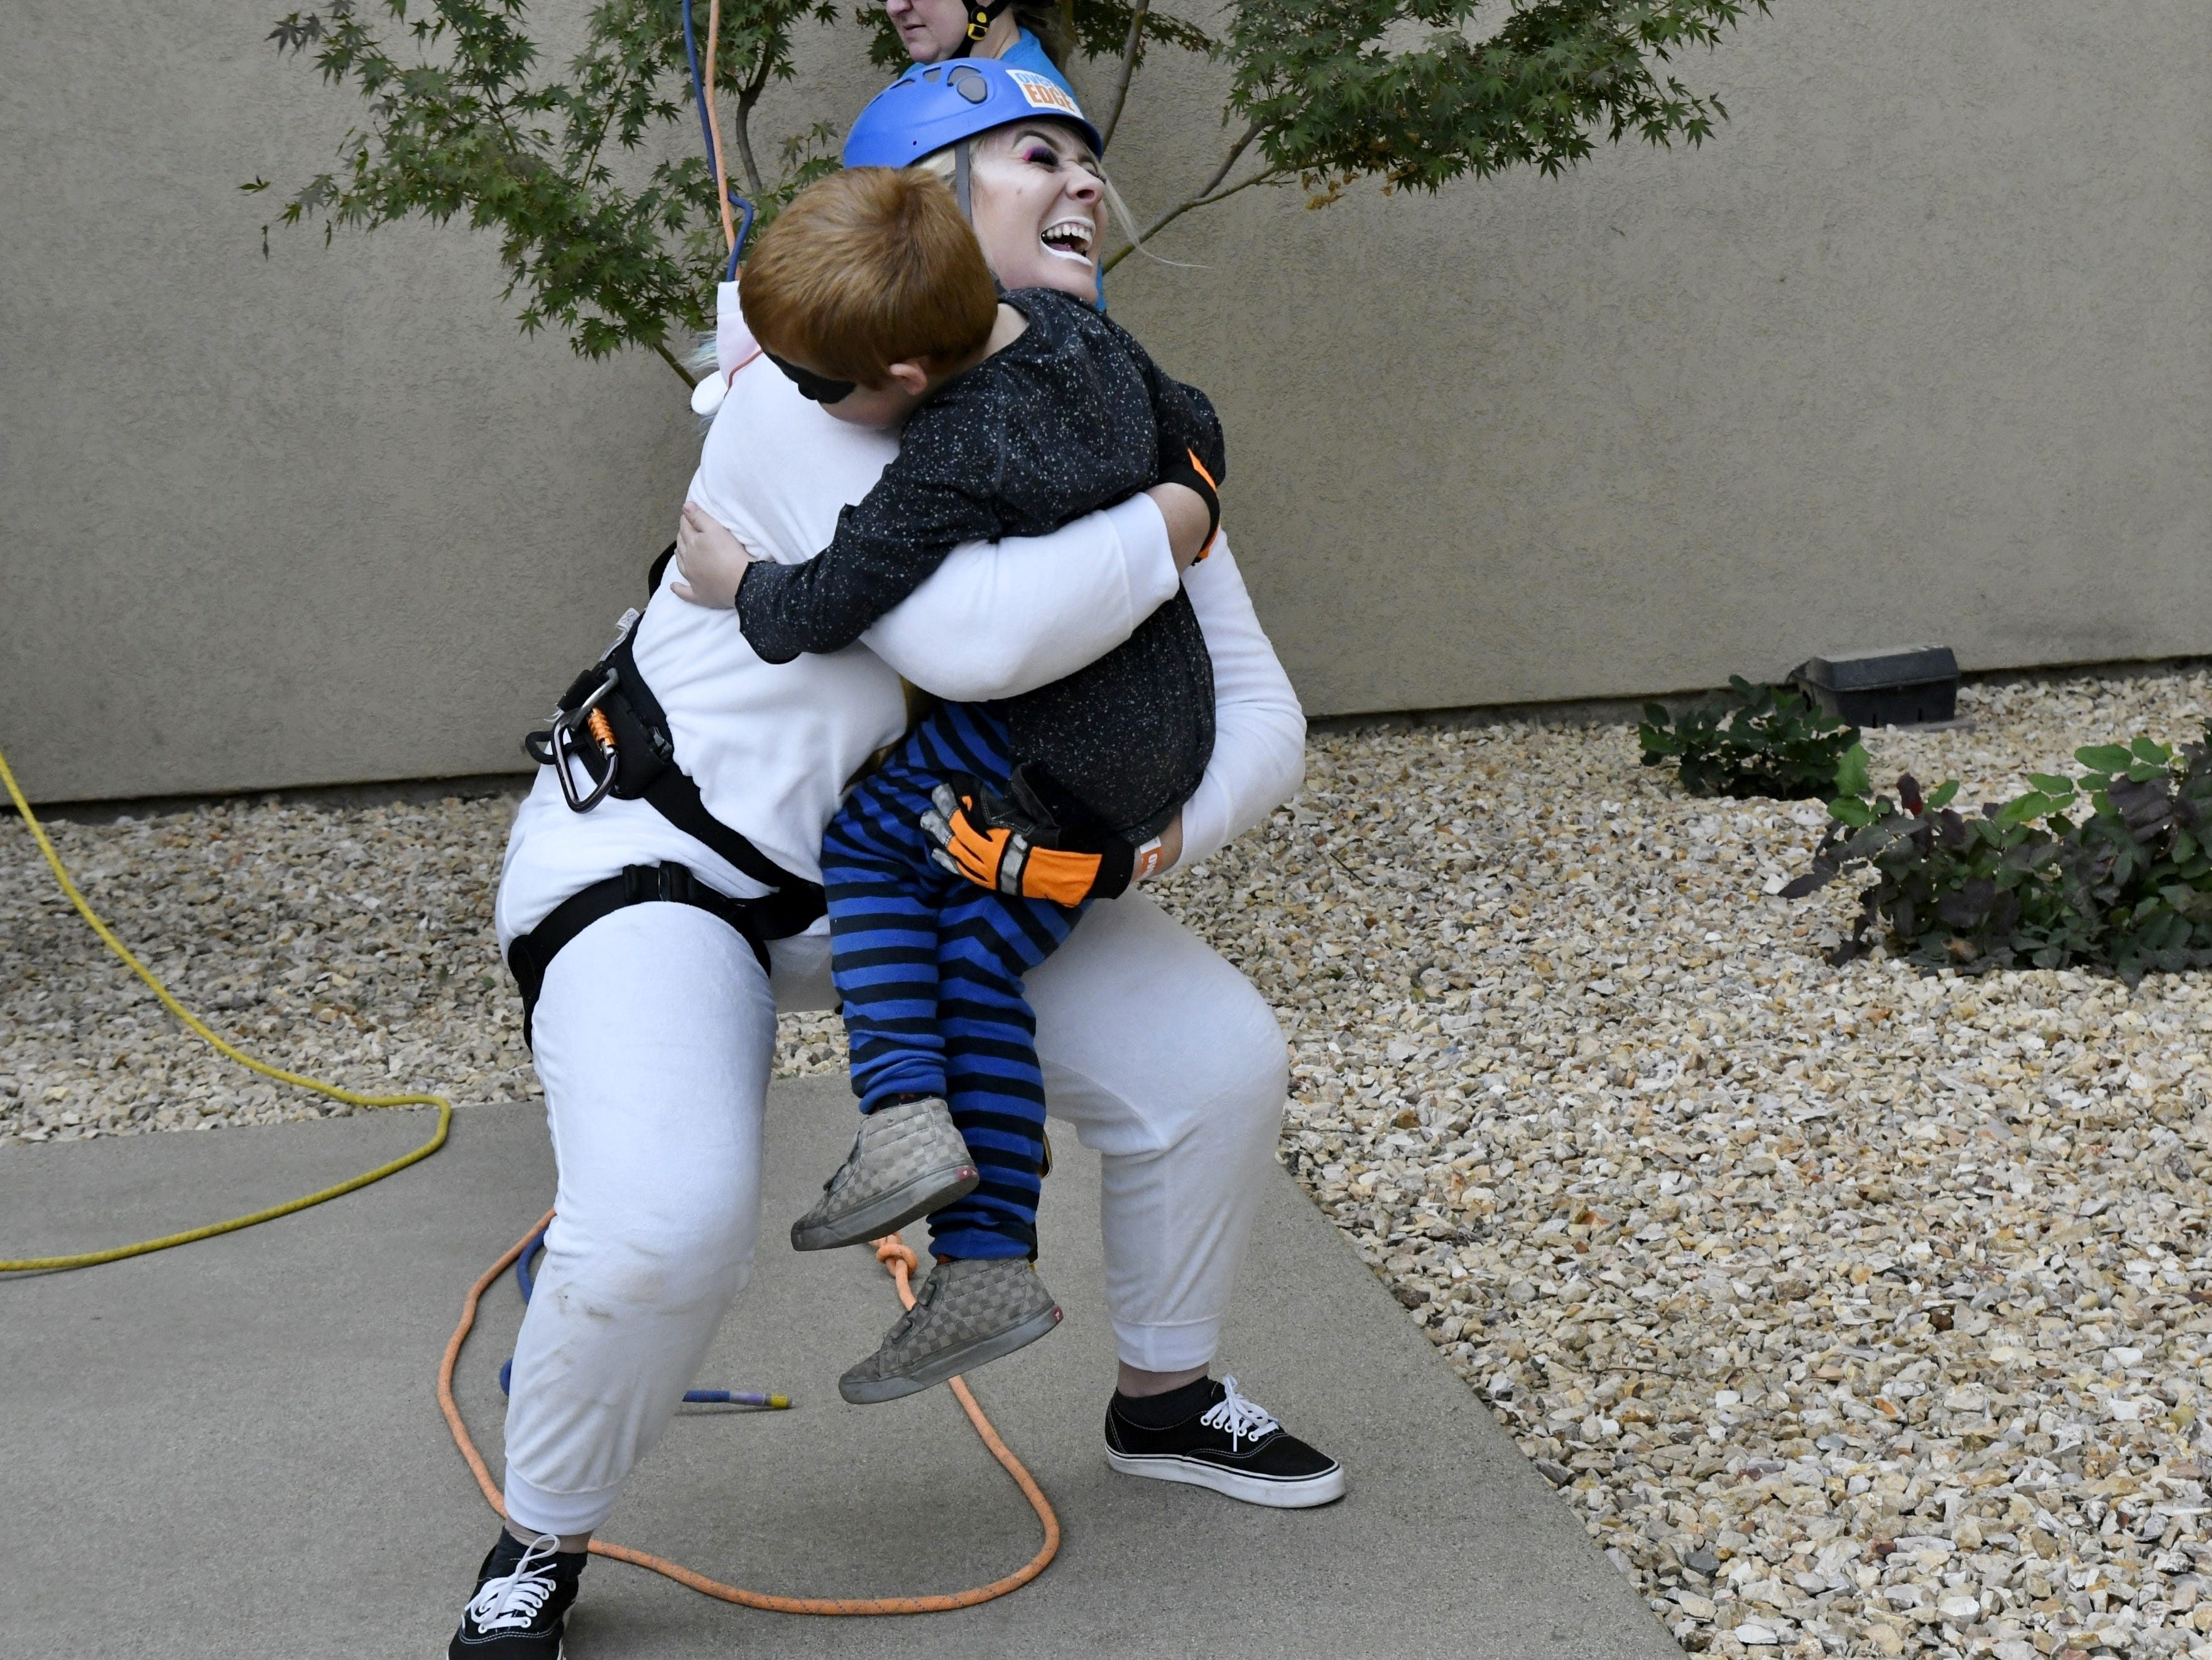 Katie McDonald embraces son Bentley McReynolds after she finishes her rappel down the side of the Visalia Marriott at the Convention Center in downtown Visalia for the first Over the Edge fundraising event for The Source LGBT+ Center on Saturday, November 10, 2018.